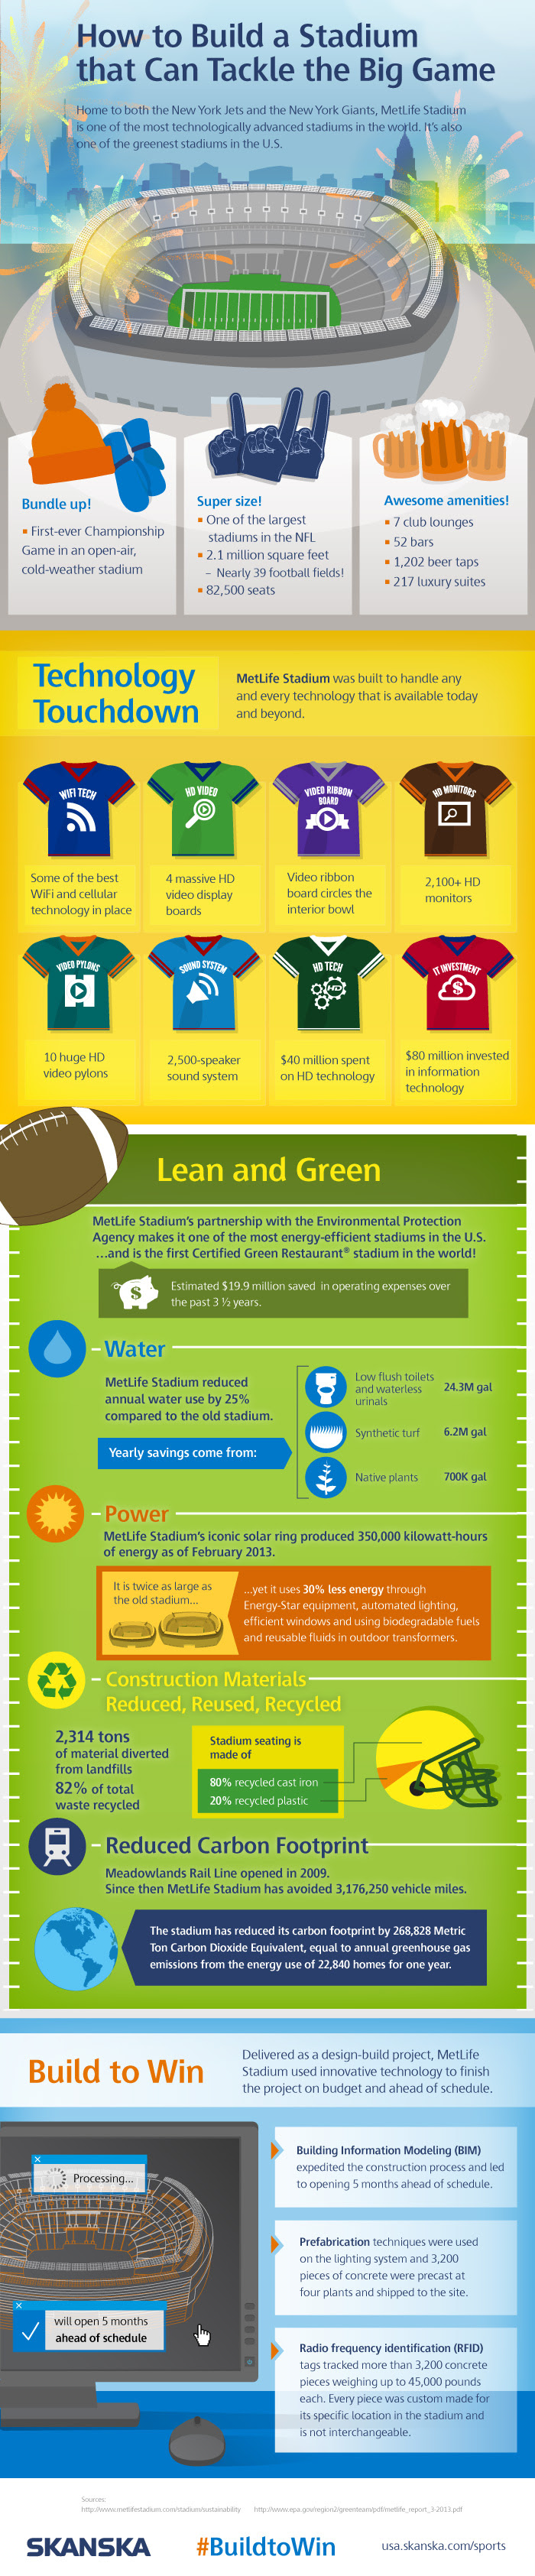 Infographic: How To Build A Stadium That Can Tackle The Big Game